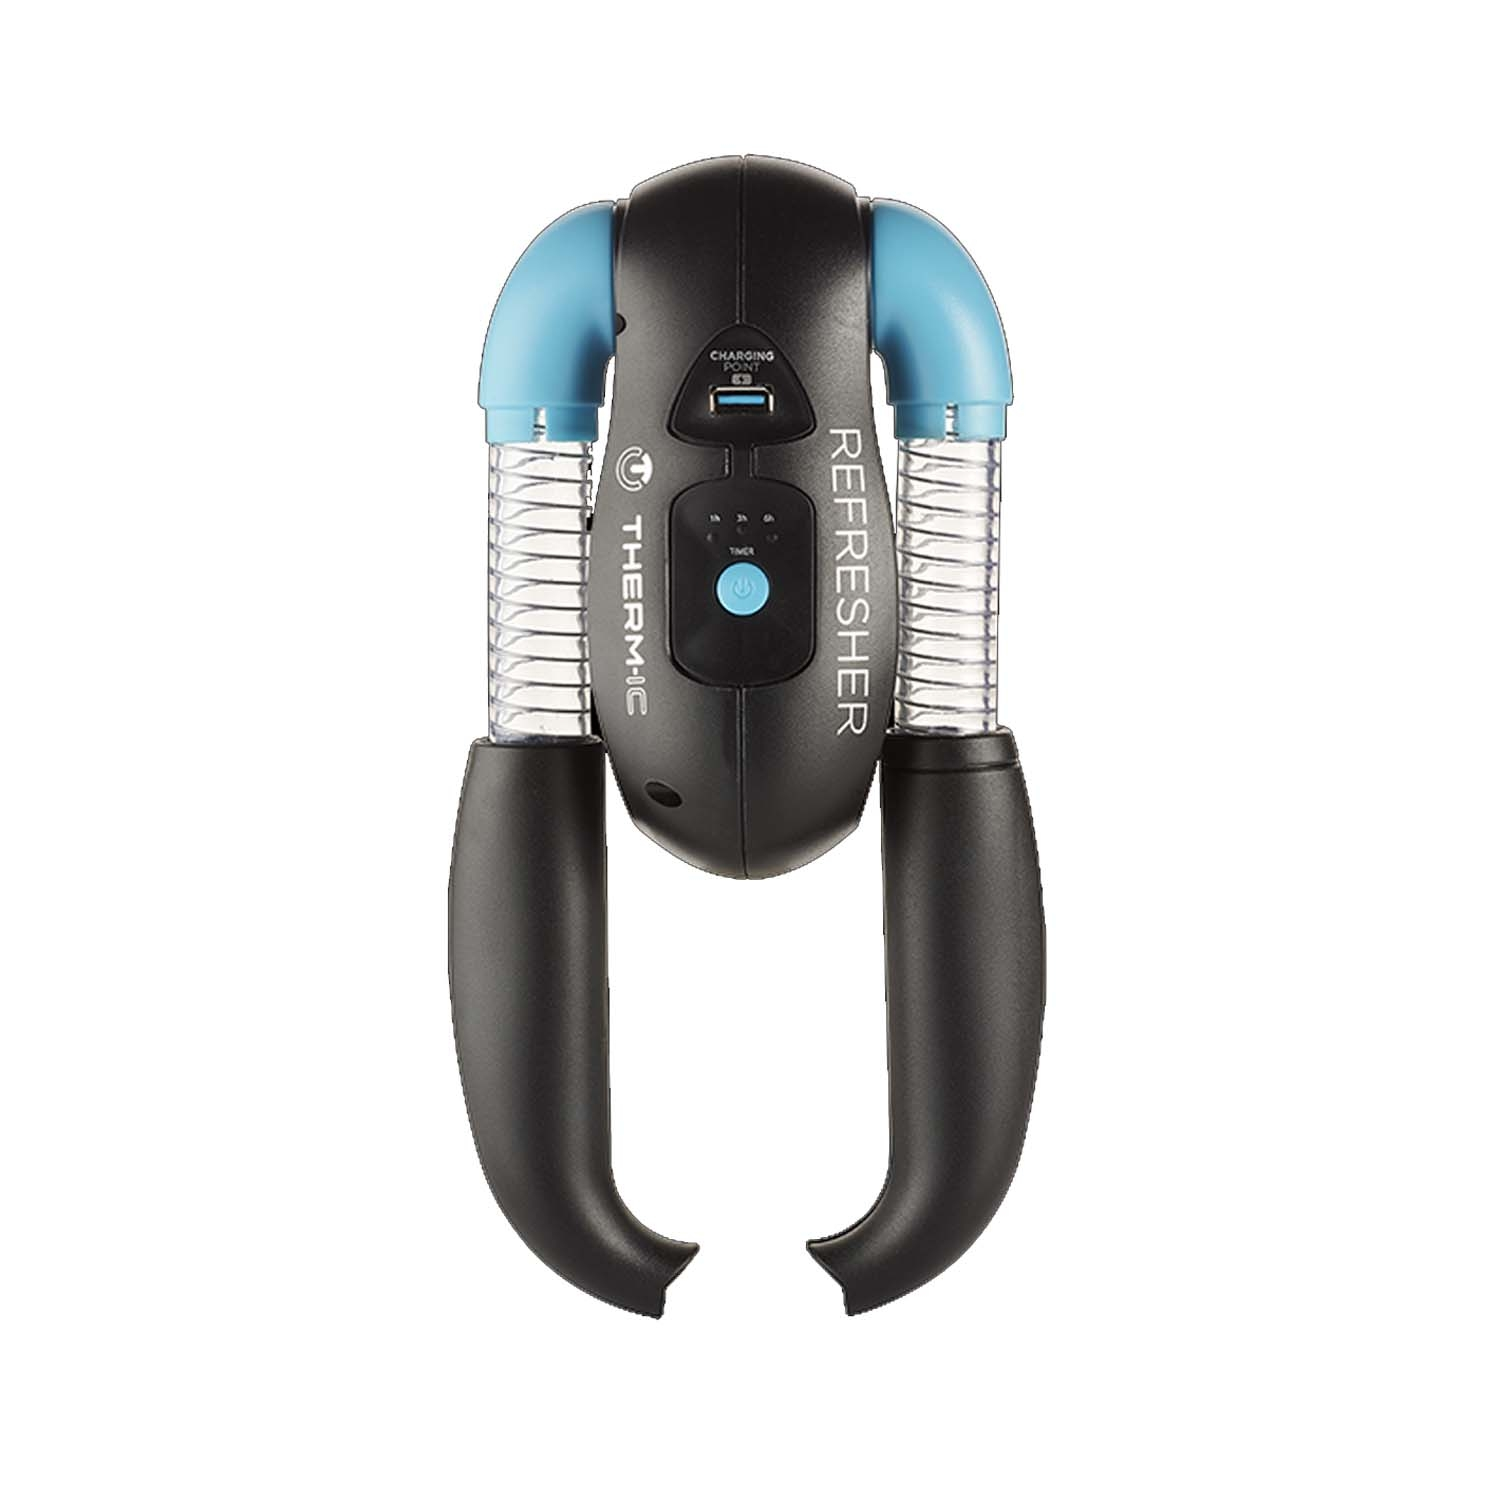 Thermic Refresher Shoe Dryer with USB 2020